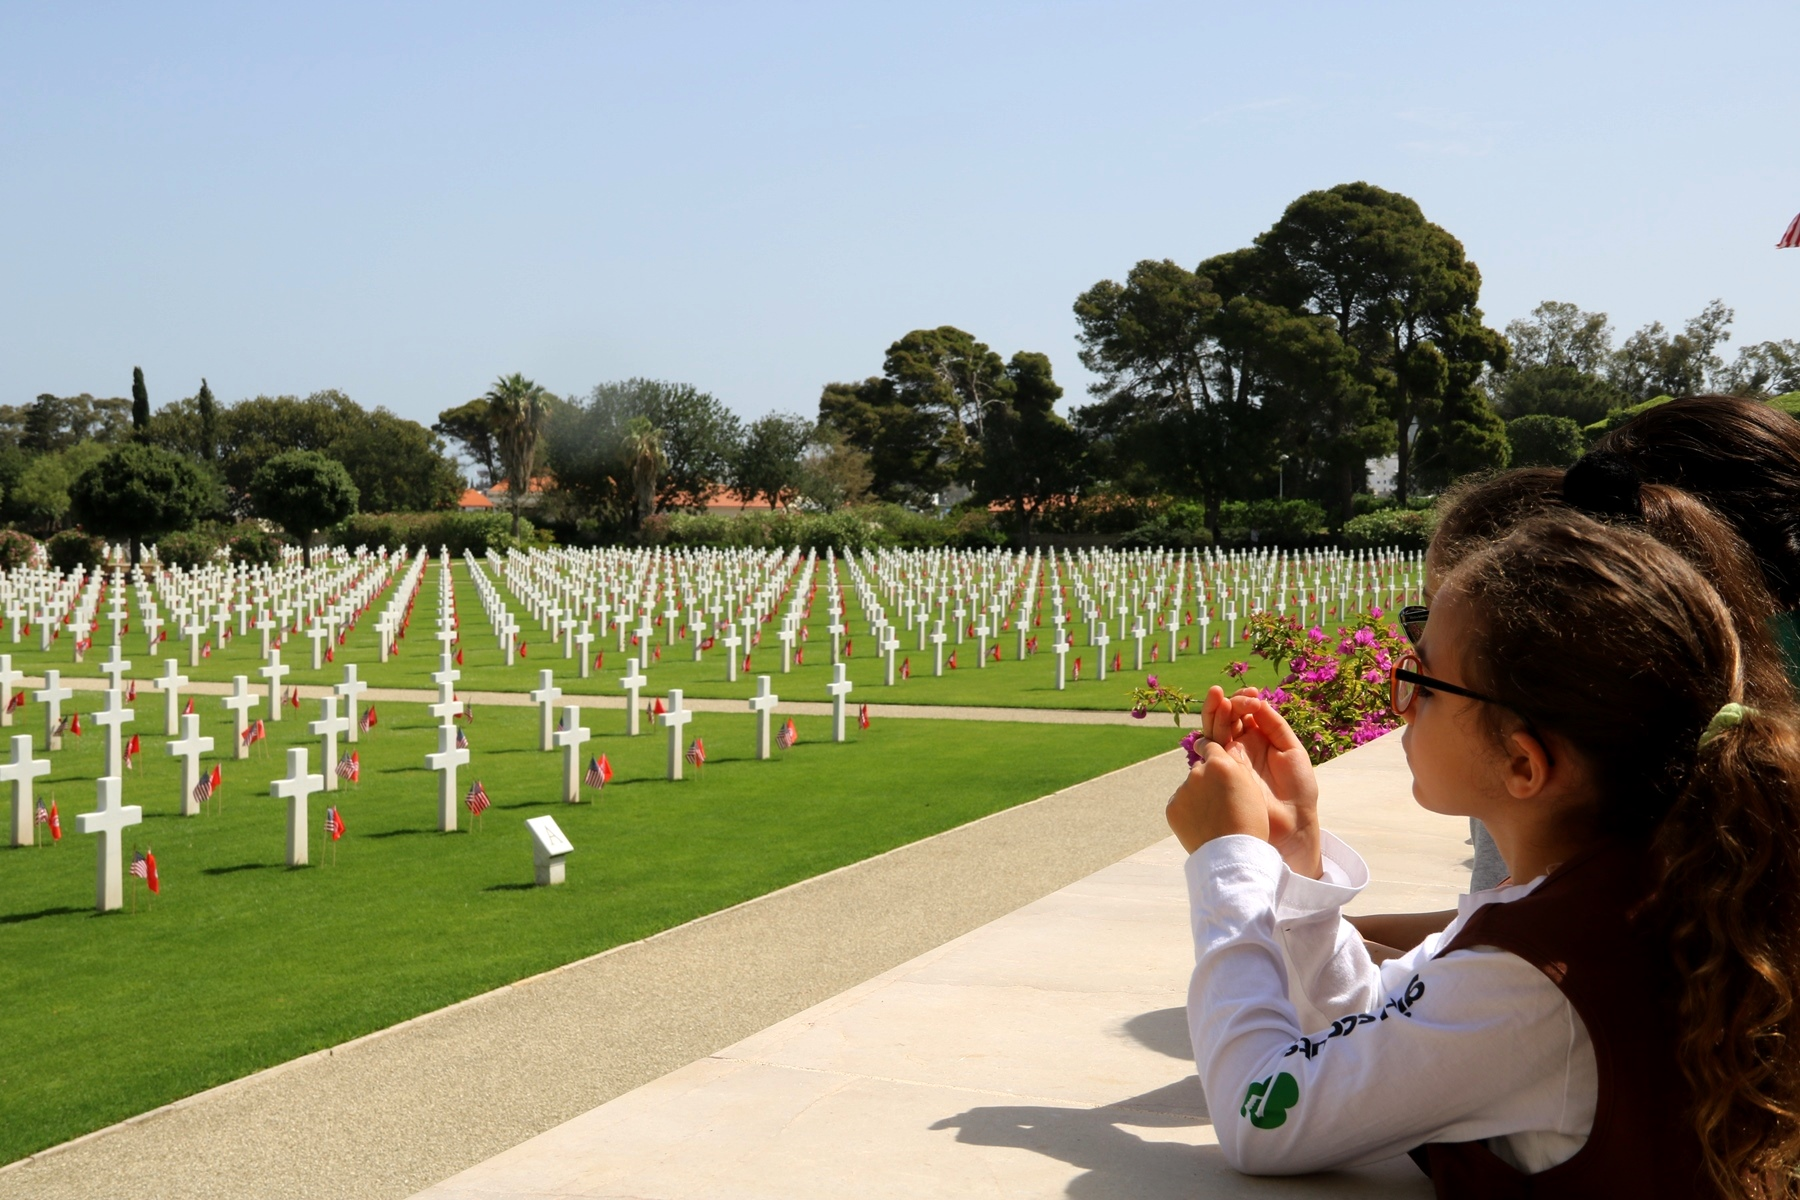 Members of a local Girl Scout troop look out across the graves of American servicemen who are laid to rest at the North Africa American Cemetery and Memorial, just prior to the Memorial Day ceremony in Carthage, Tunisia, May 28, 2018. (Photo by Zouhaier SFAXI, U.S. Embassy Tunis)